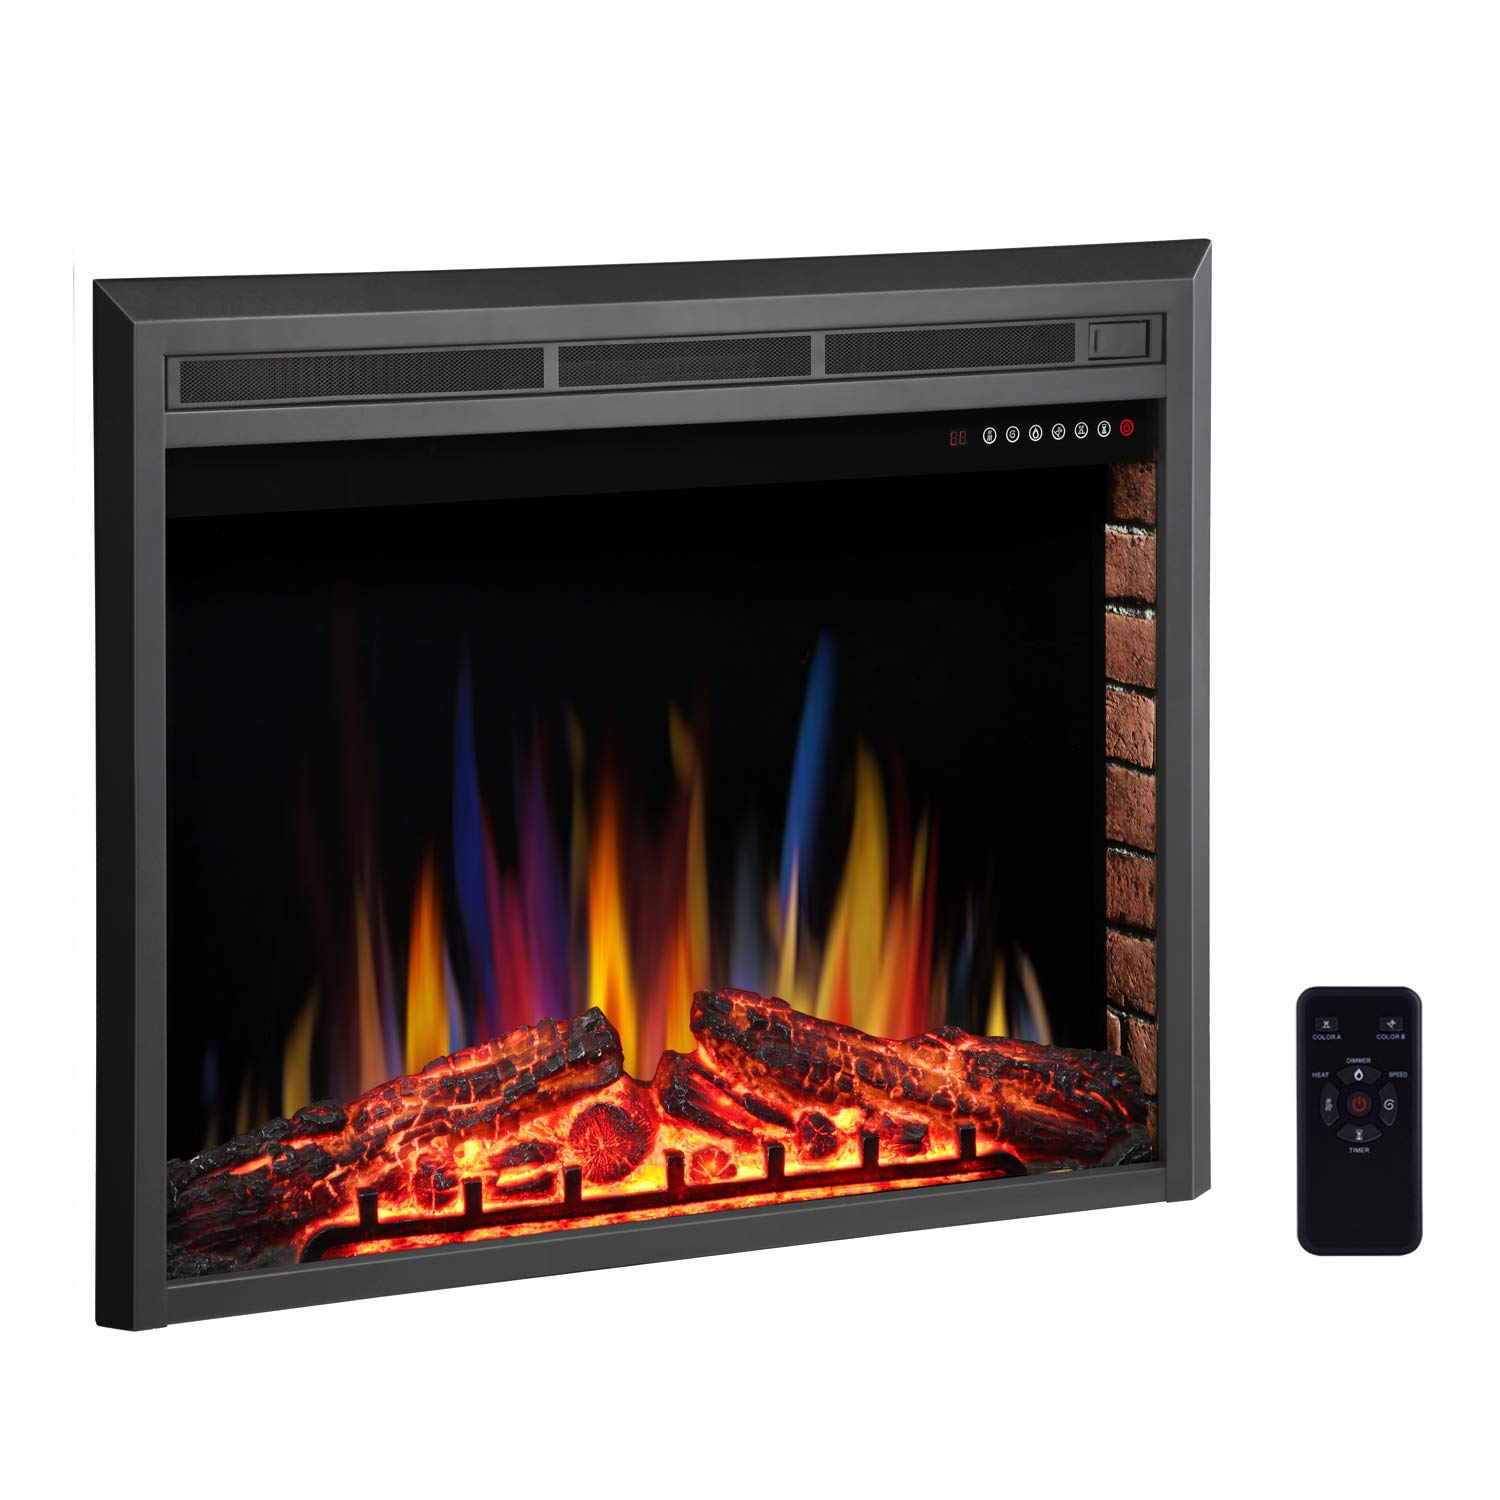 """Double Sided Electric Fireplace Awesome Rwflame 28"""" Electric Fireplace Insert Freestanding & Recessed Electric Stove Heater touch Screen Remote Control 750w 1500w with Timer & Colorful Flame"""